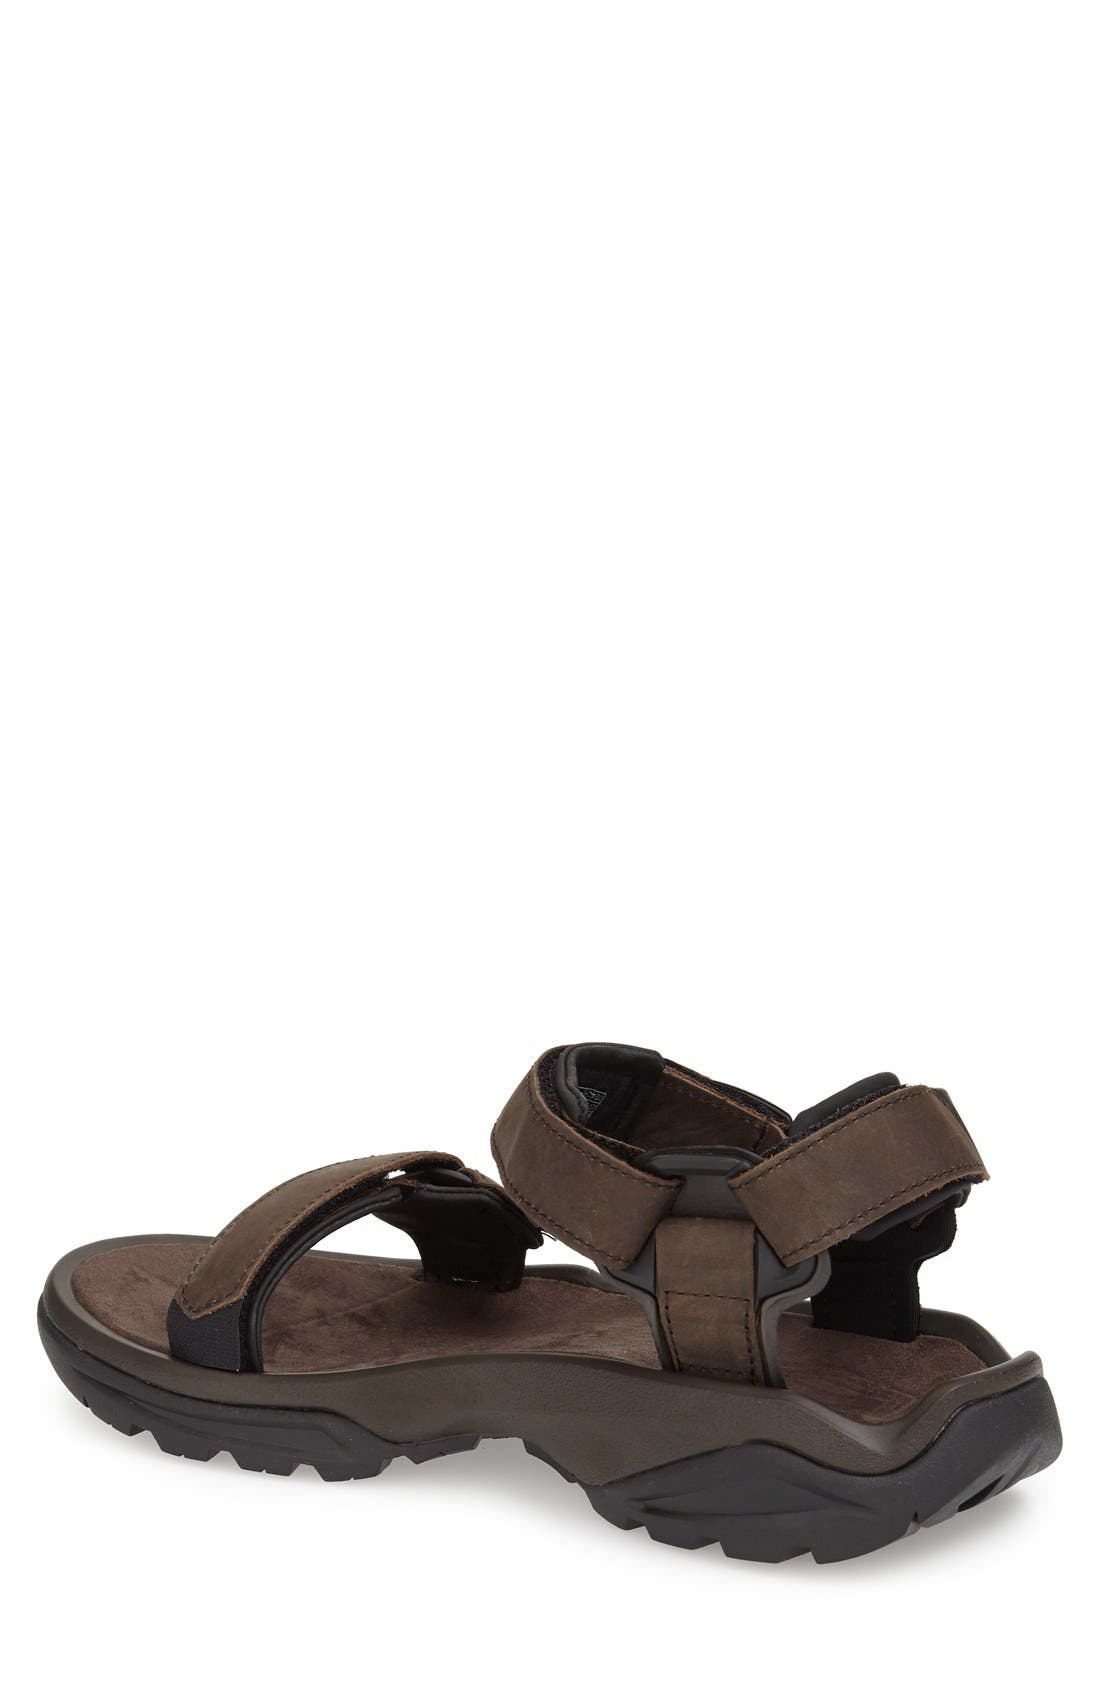 'Terra Fi 4' Sport Sandal,                             Alternate thumbnail 2, color,                             TURKISH COFFEE